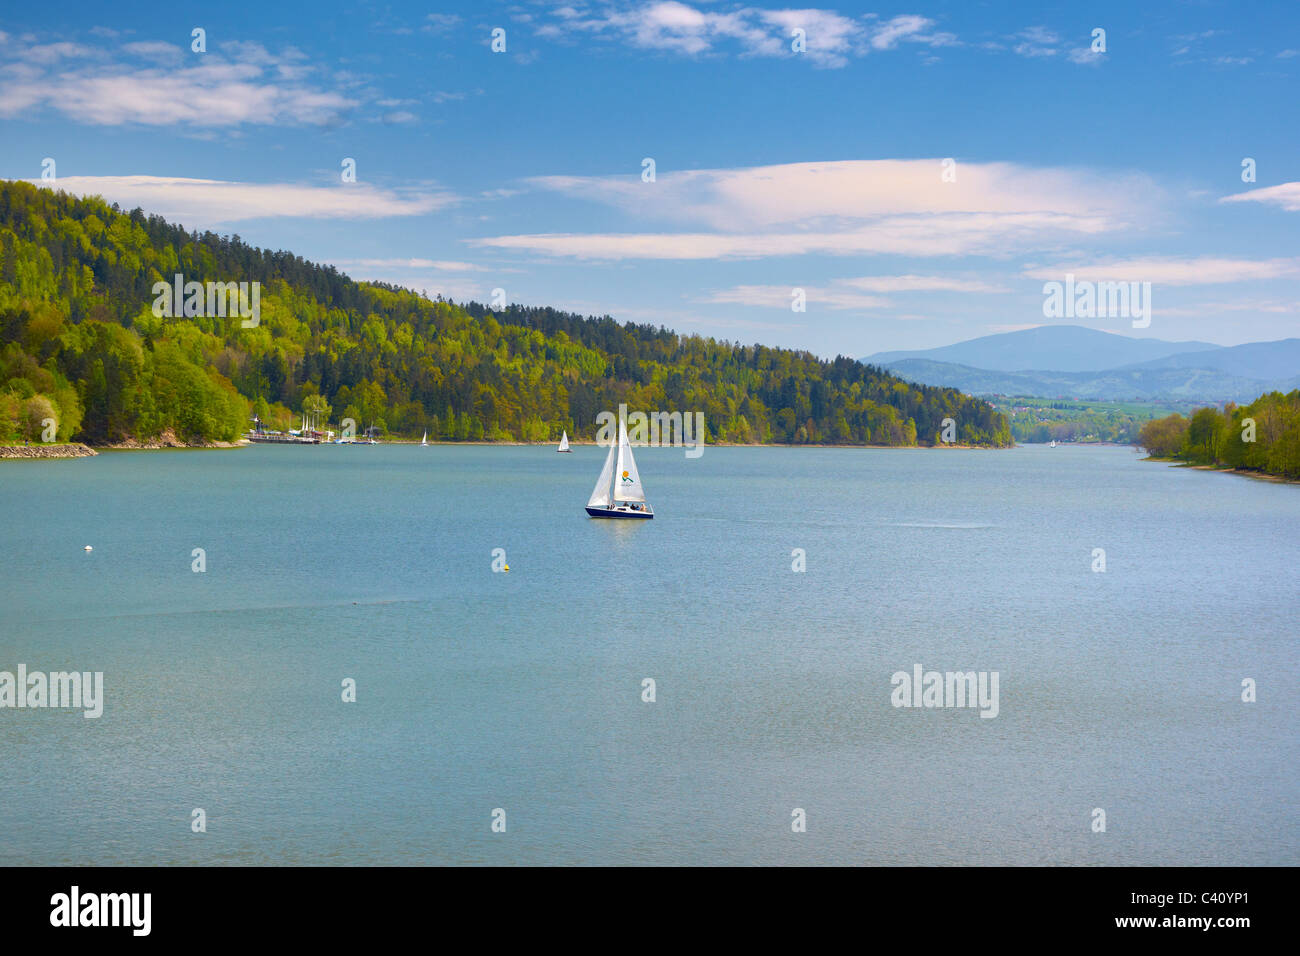 Zywiecki lake, Silesia region, Poland - Stock Image